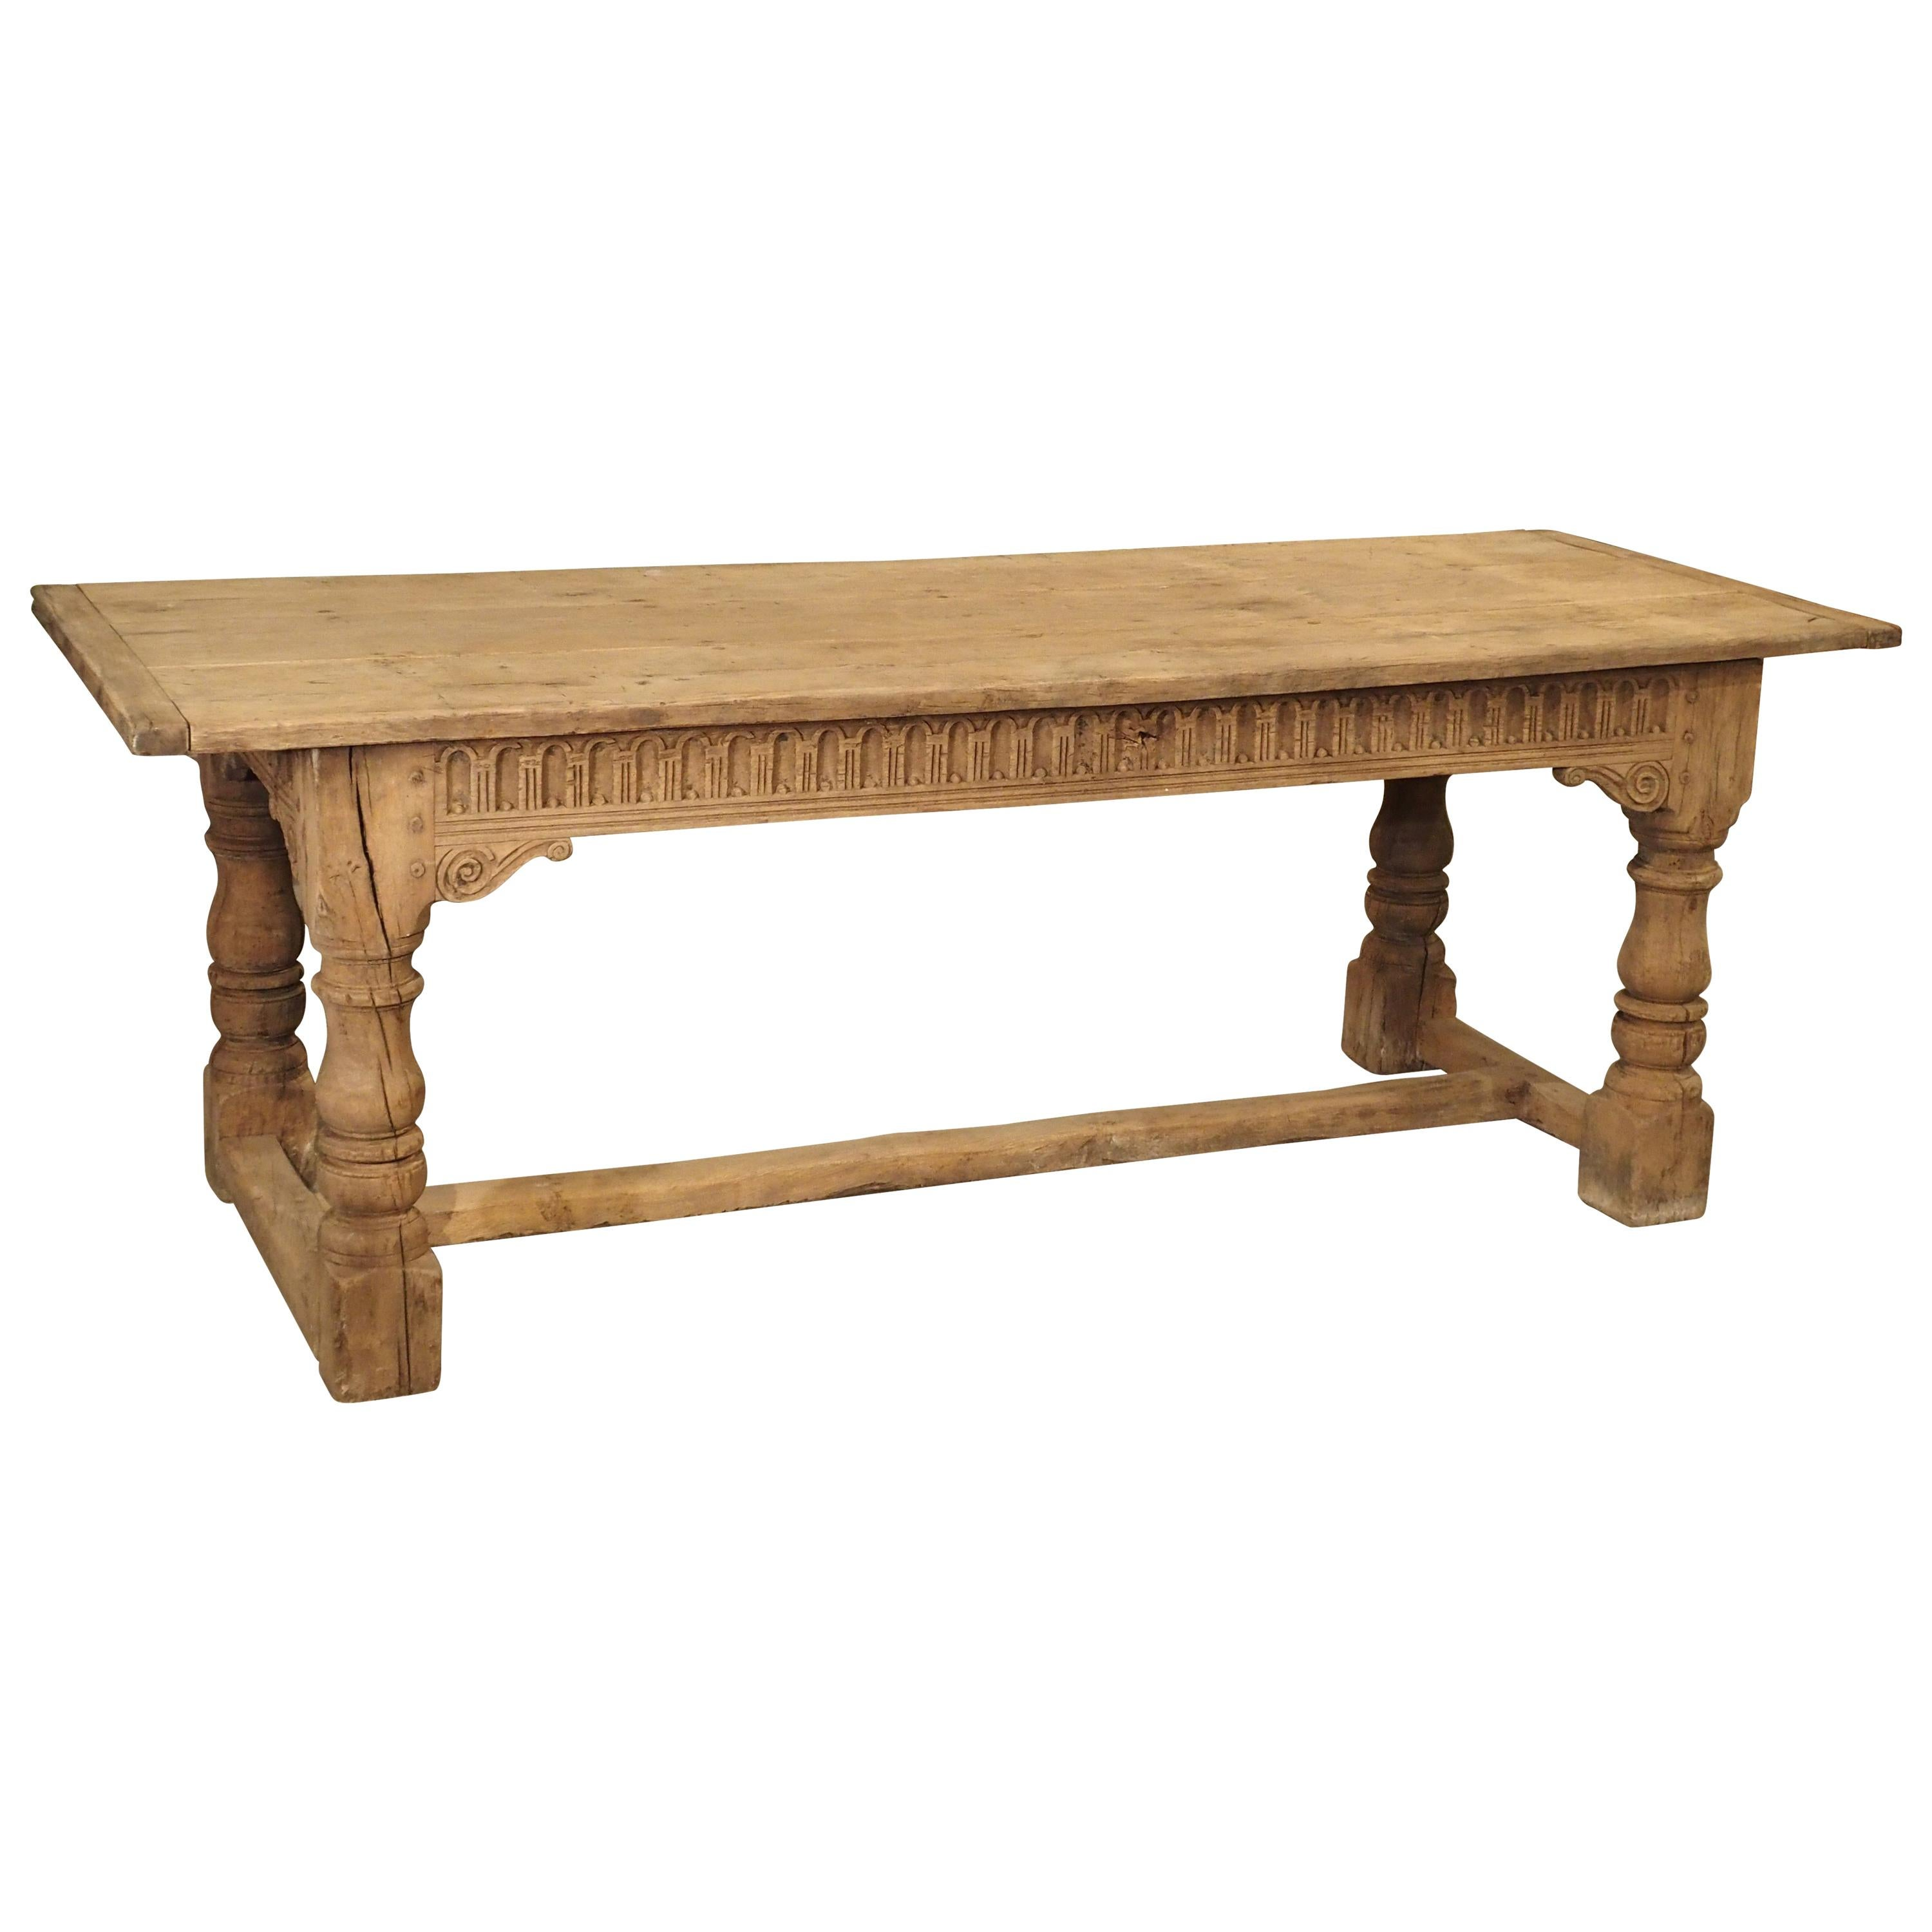 1900-1950 Furniture Oak Refrectory Table 2019 New Fashion Style Online